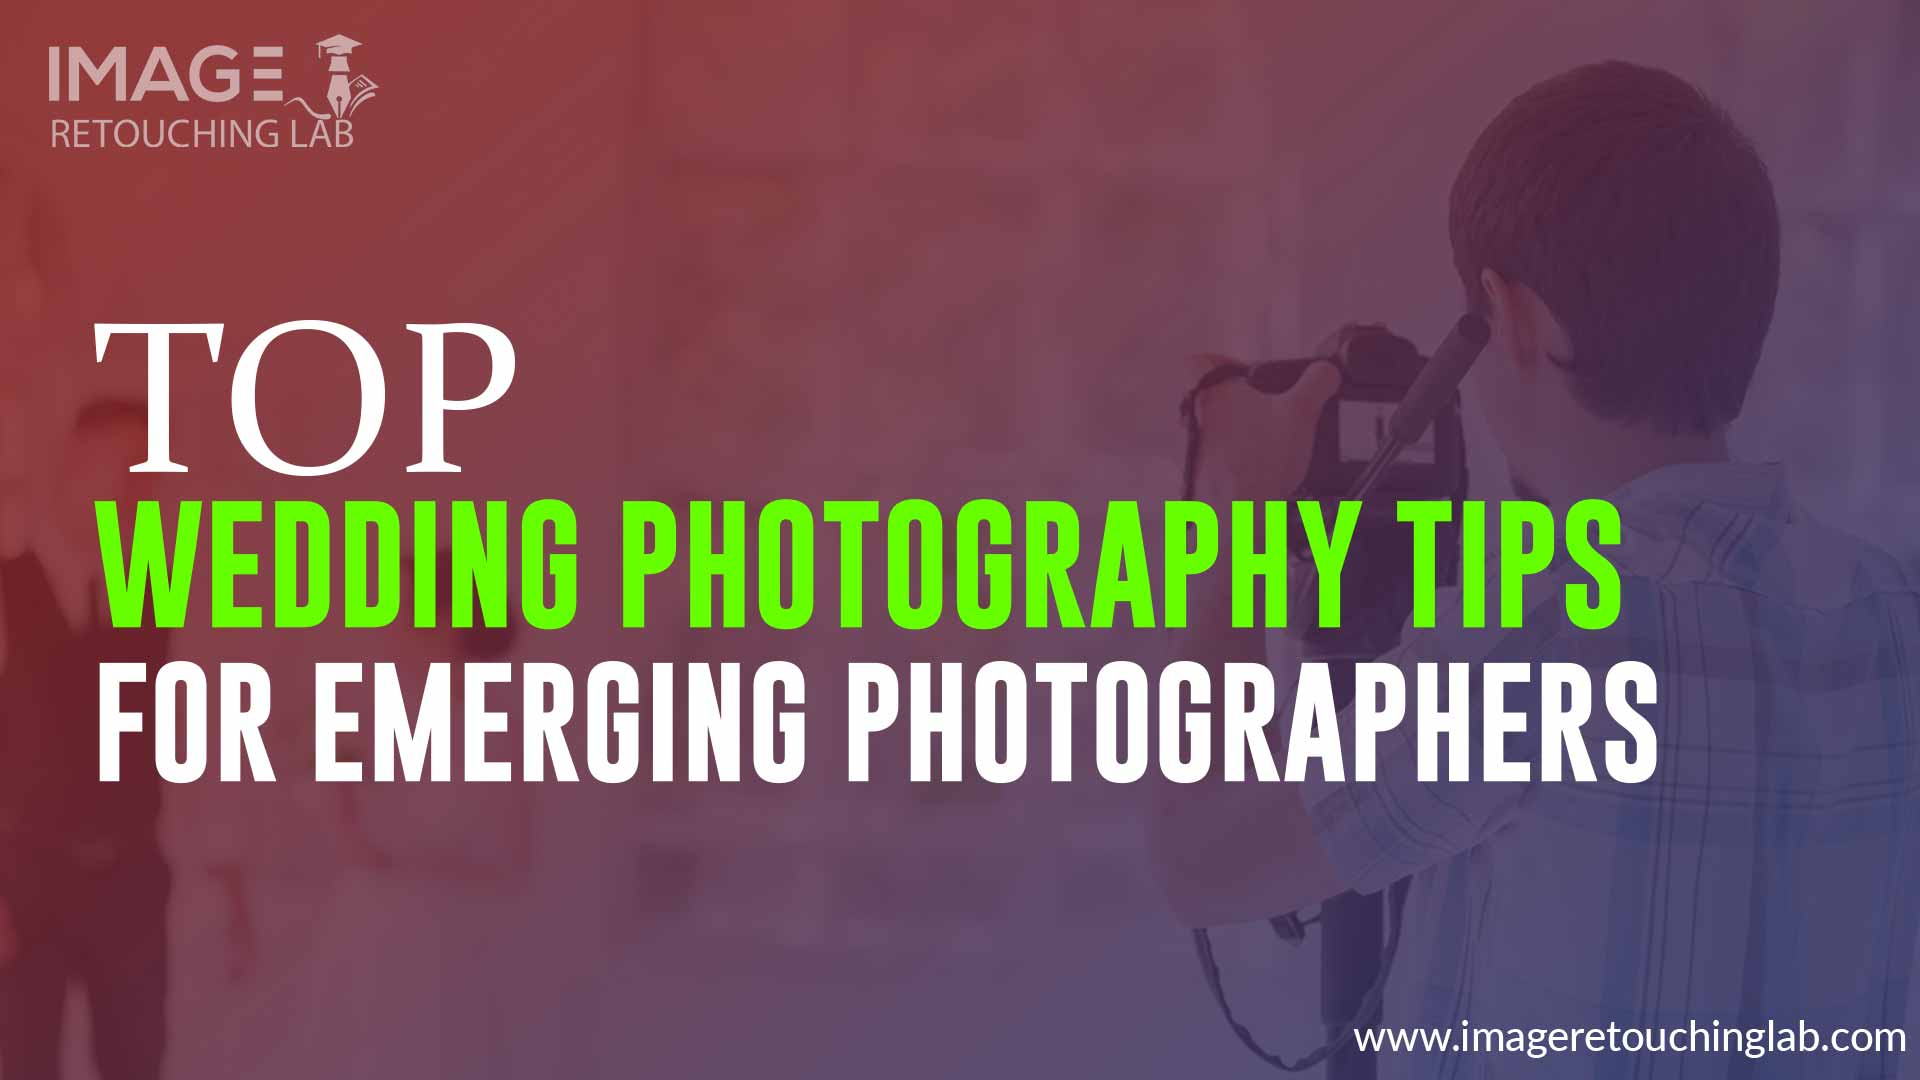 Top Wedding Photography Tips for Emerging Photographers (Info-graphics)